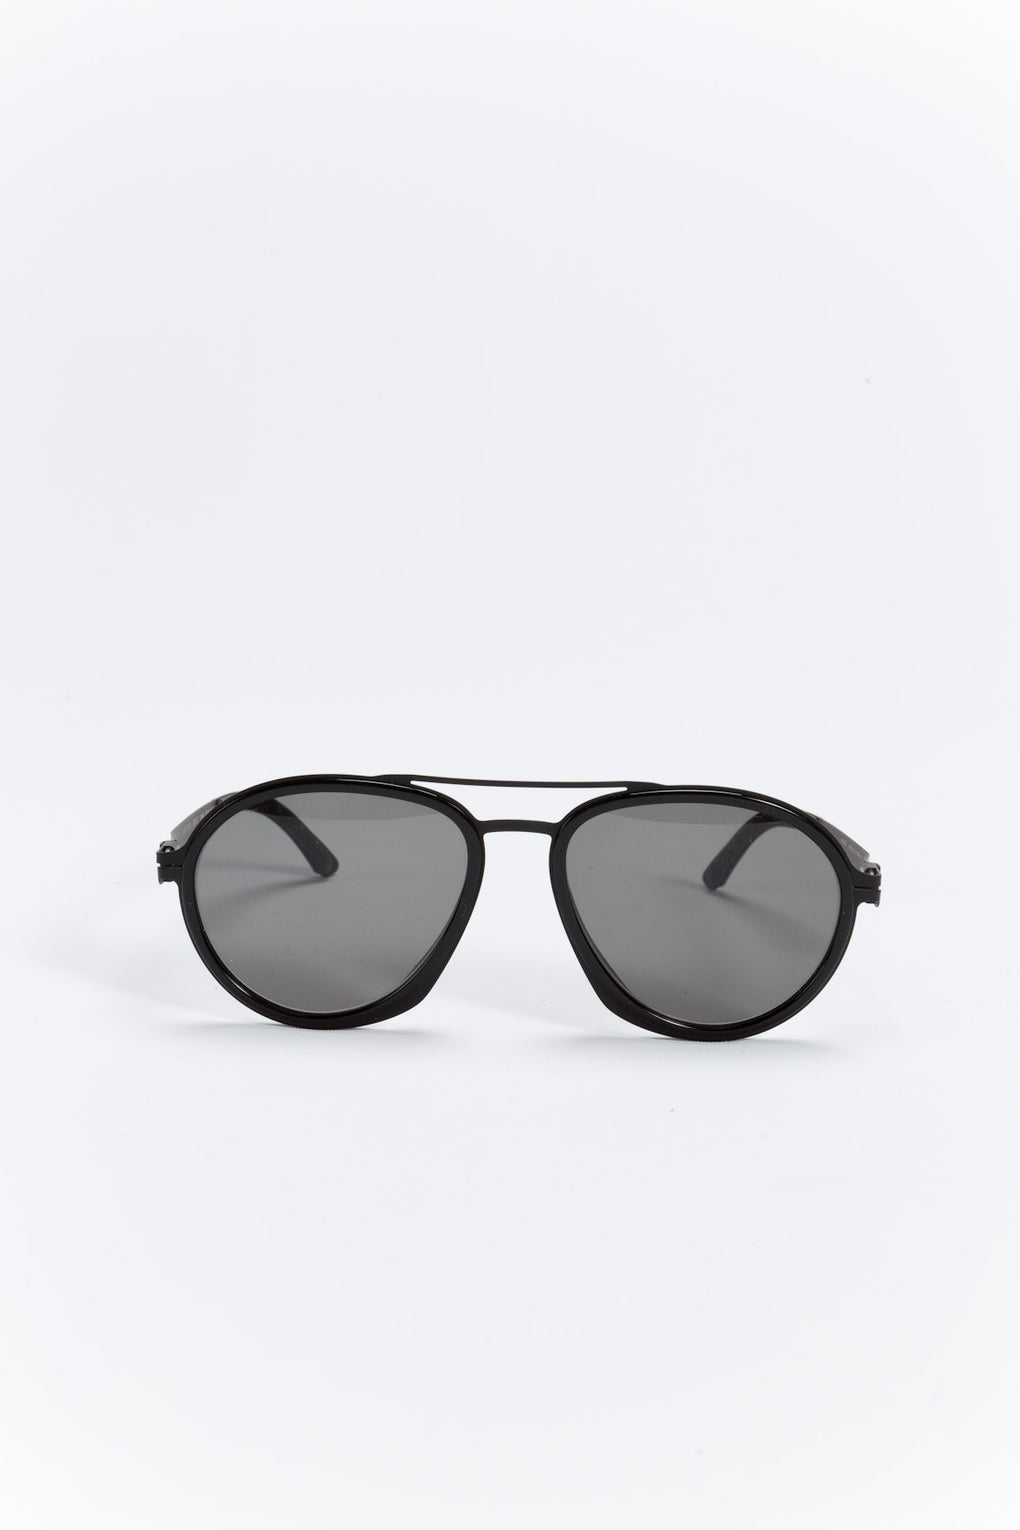 Damir Doma Sunglasses Black/Black